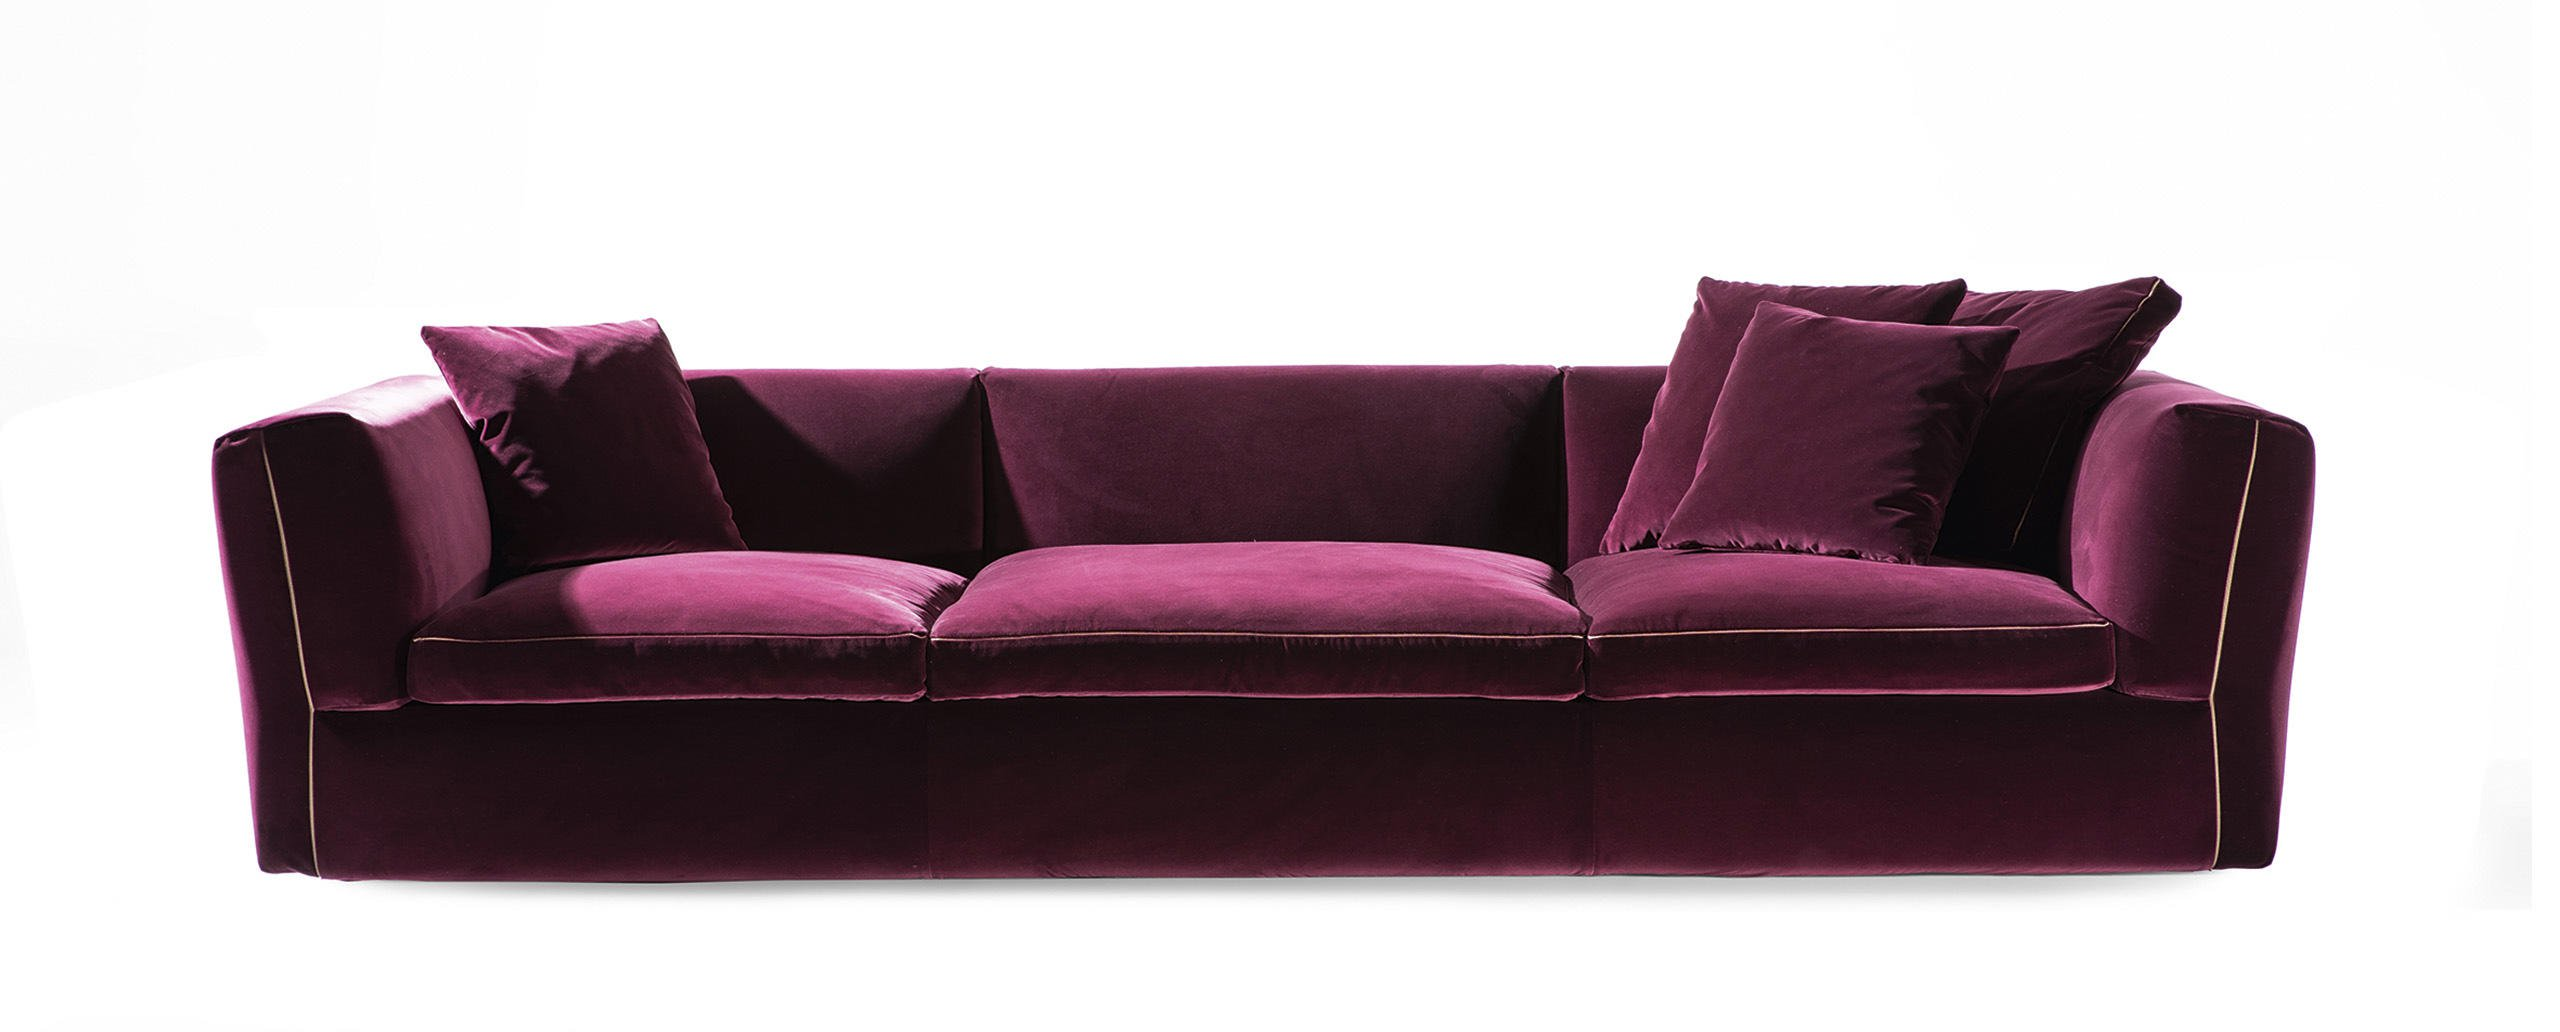 2_cassina_dress-up_sofa_system_rodolfo_dordoni